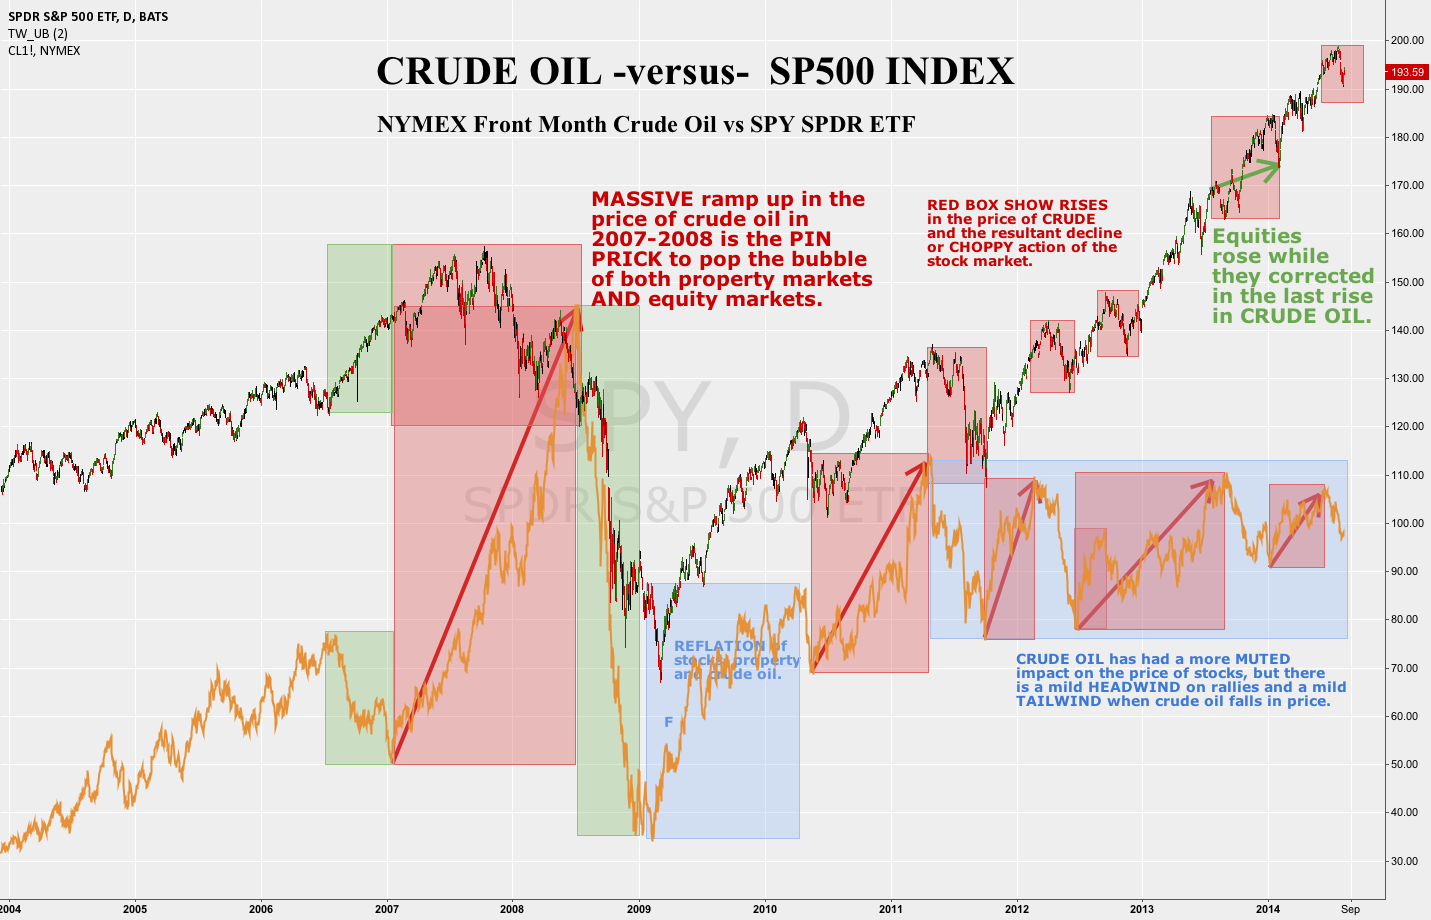 Crude Oil's Lagged Impact on the SP500 - What you need to know